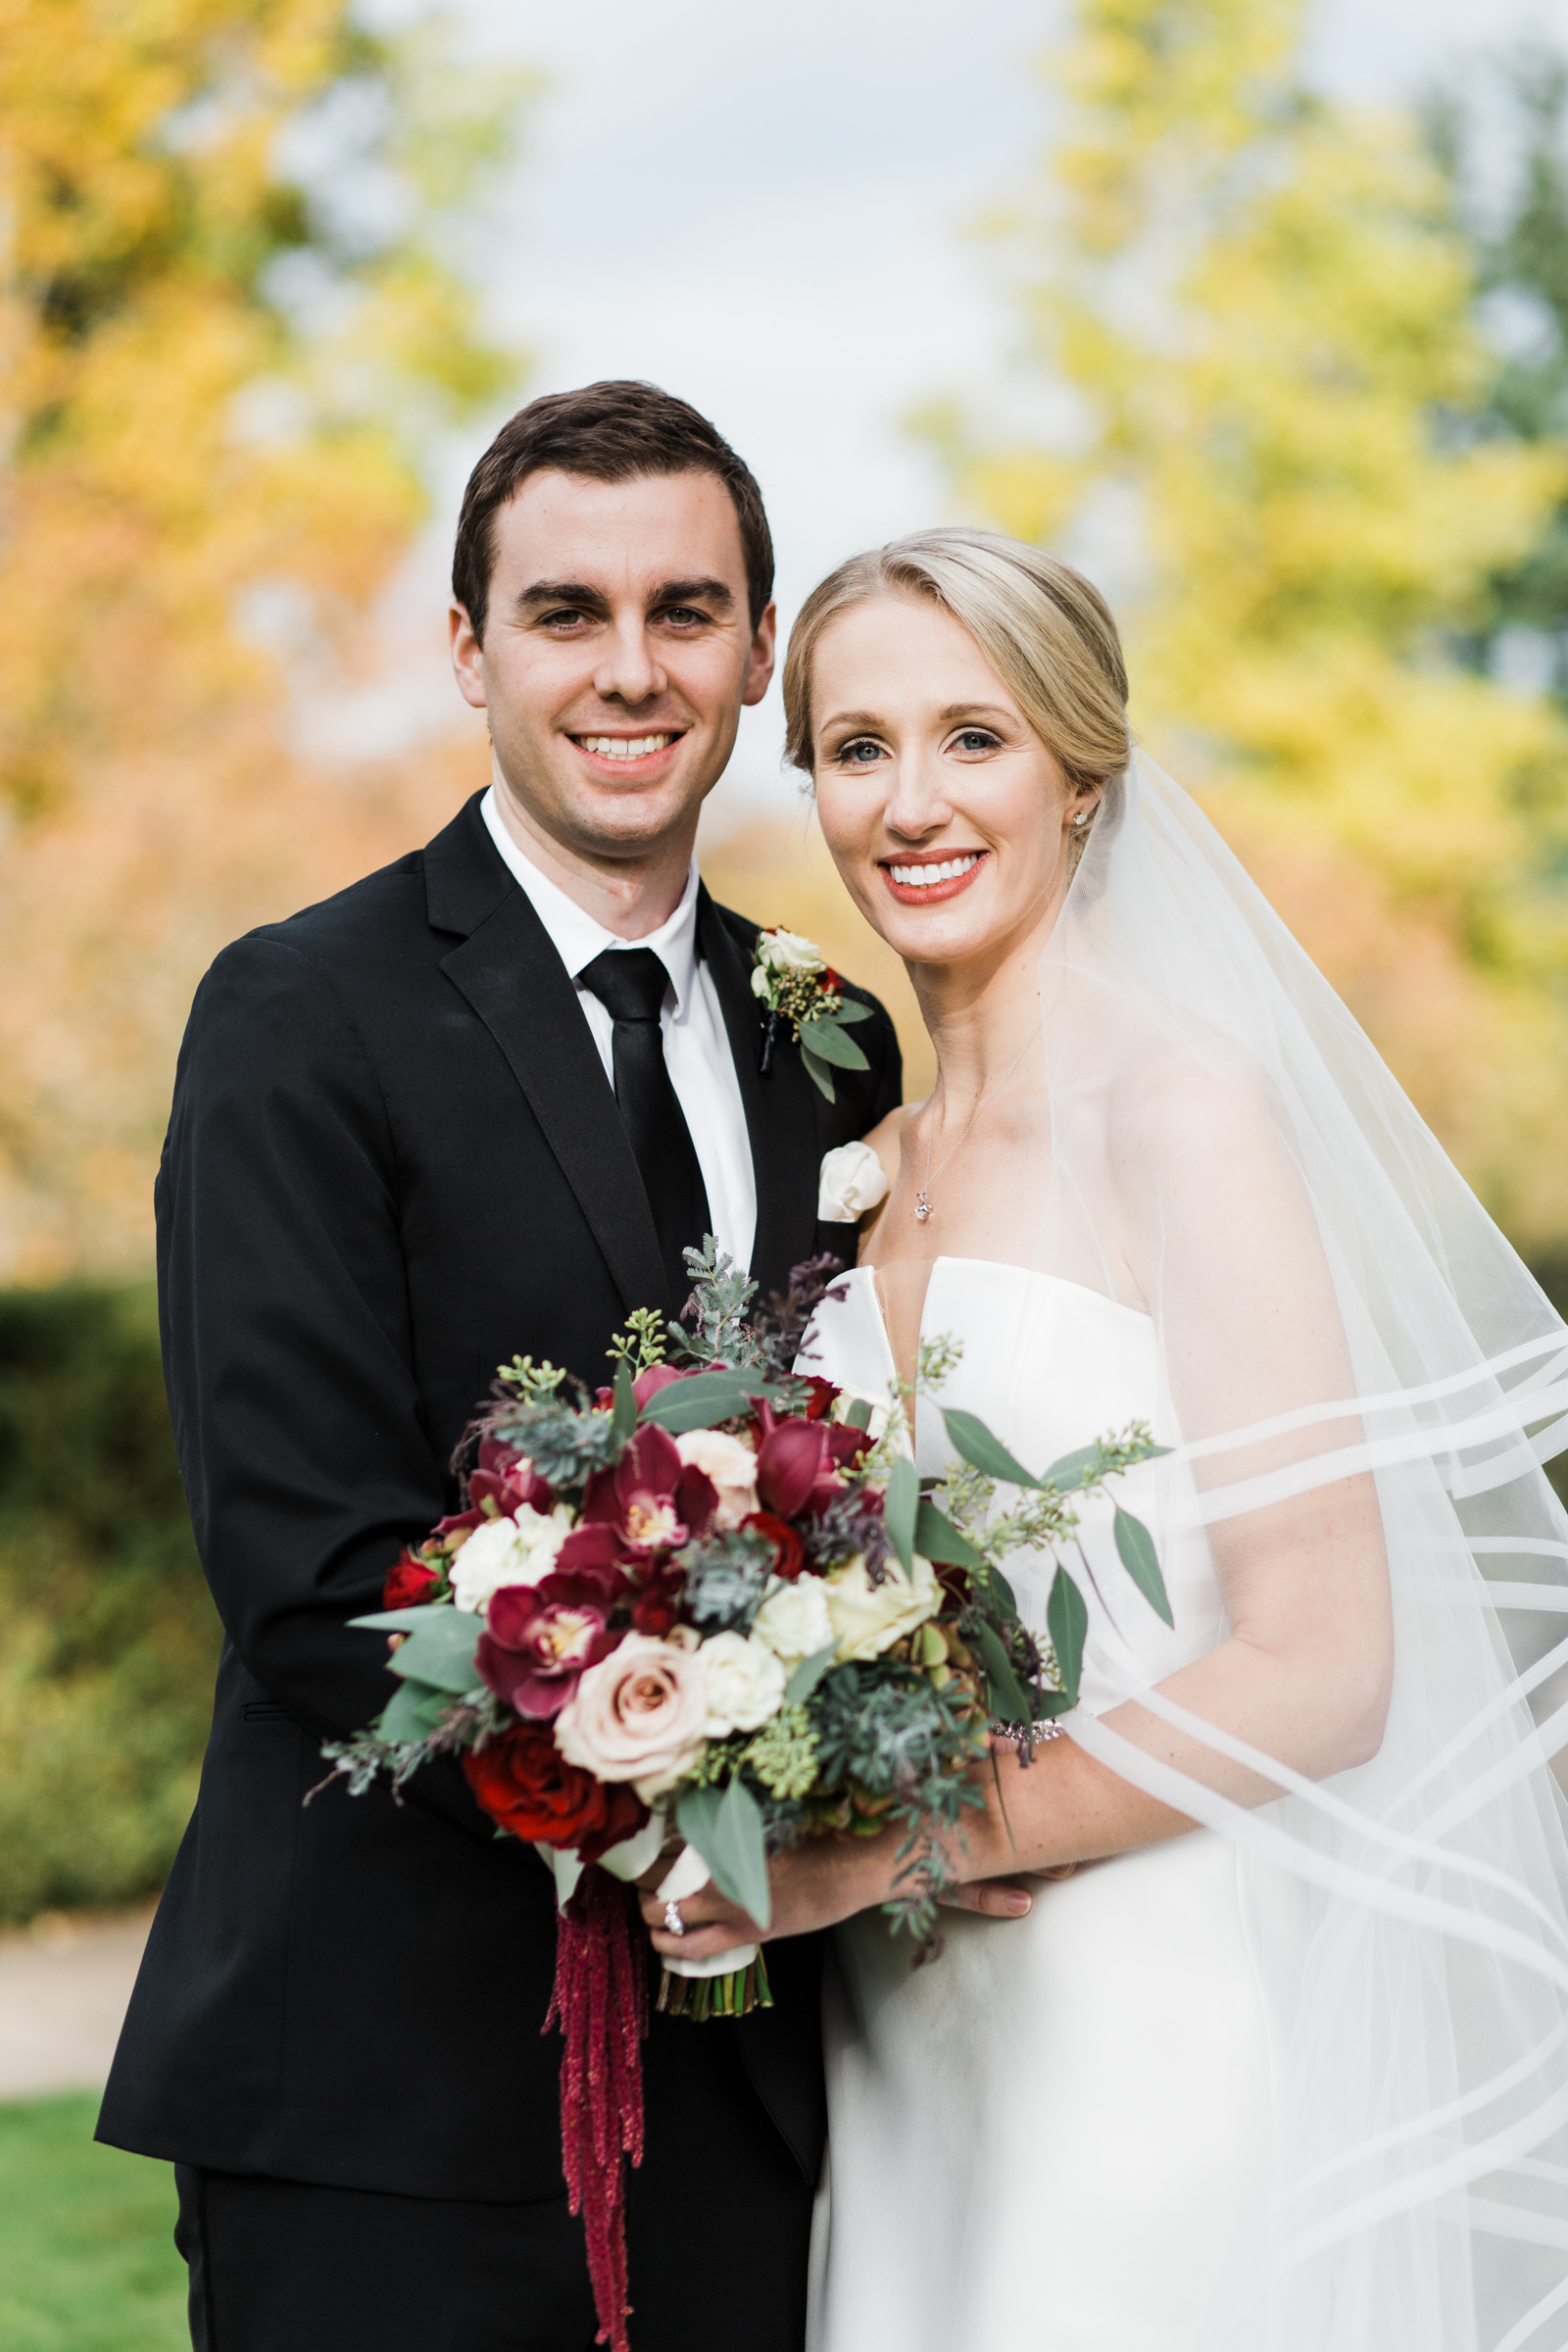 Classic couple portrait with bride holding red rose bouquet - photo by Stephanie Cristalli Photography